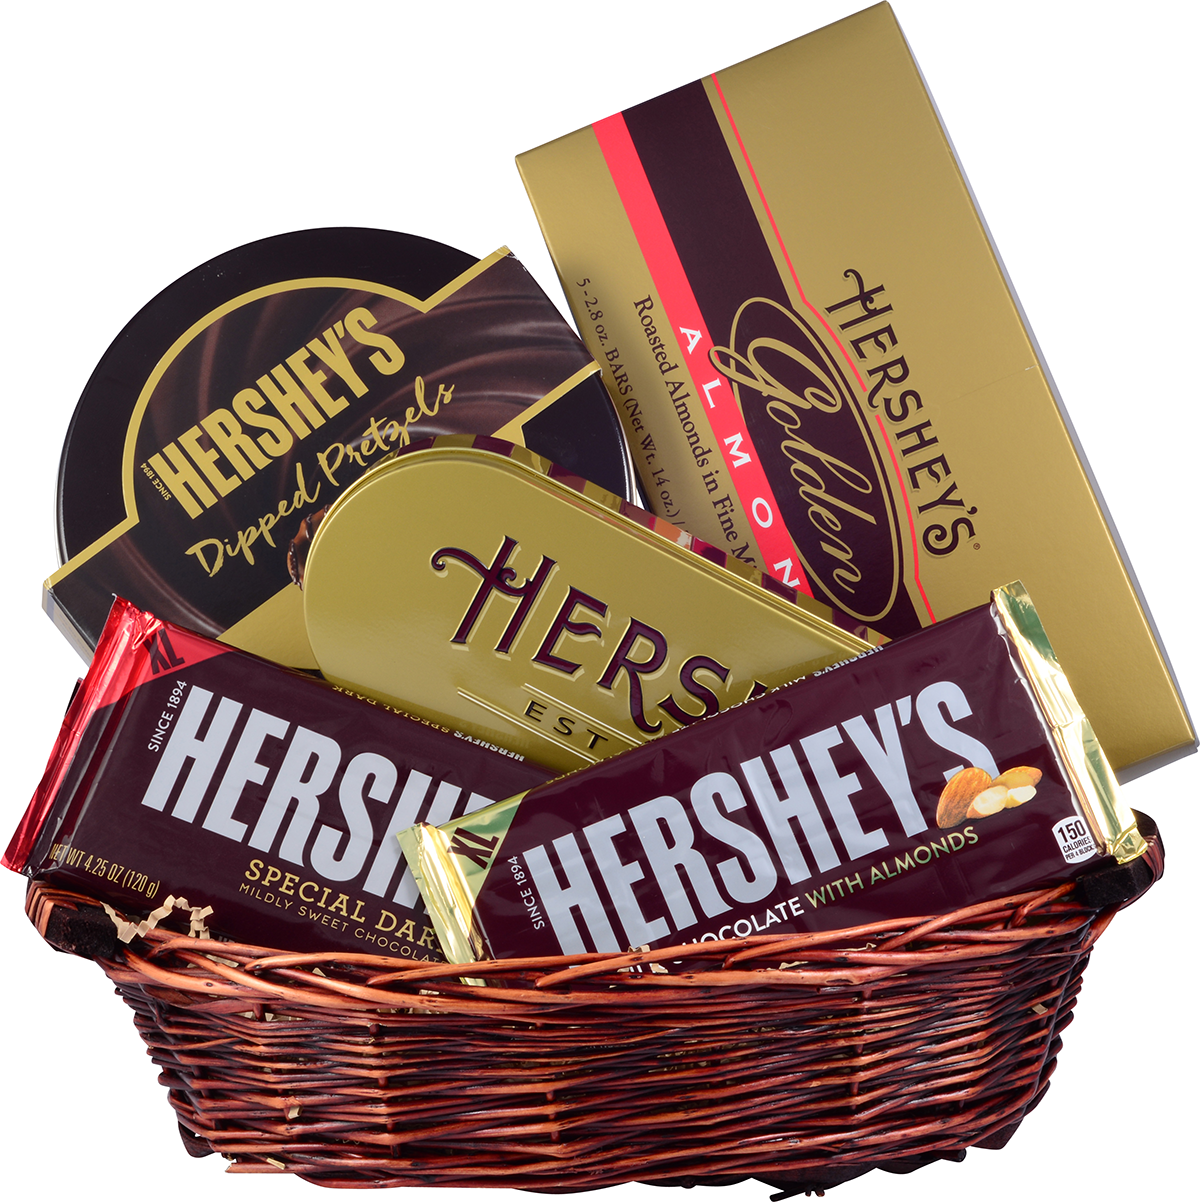 HERSHEY'S Holiday Gift Basket